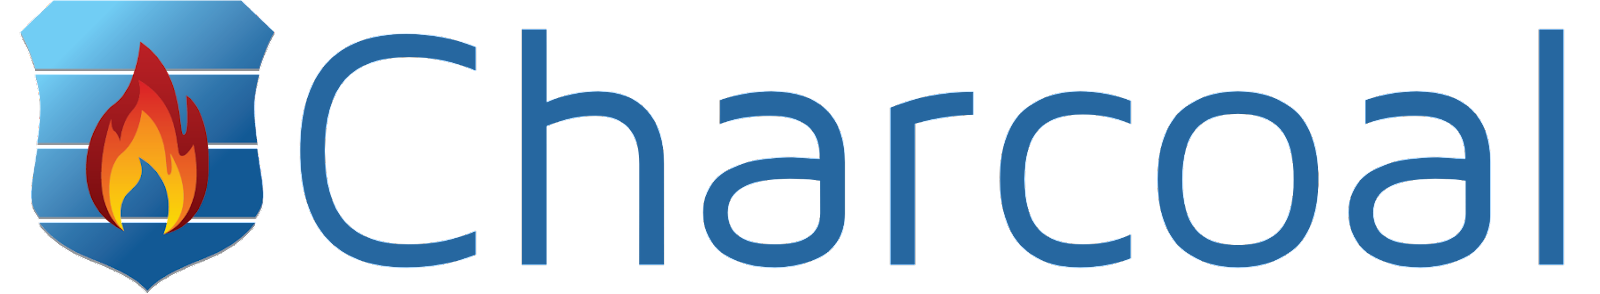 Charcoal project logo